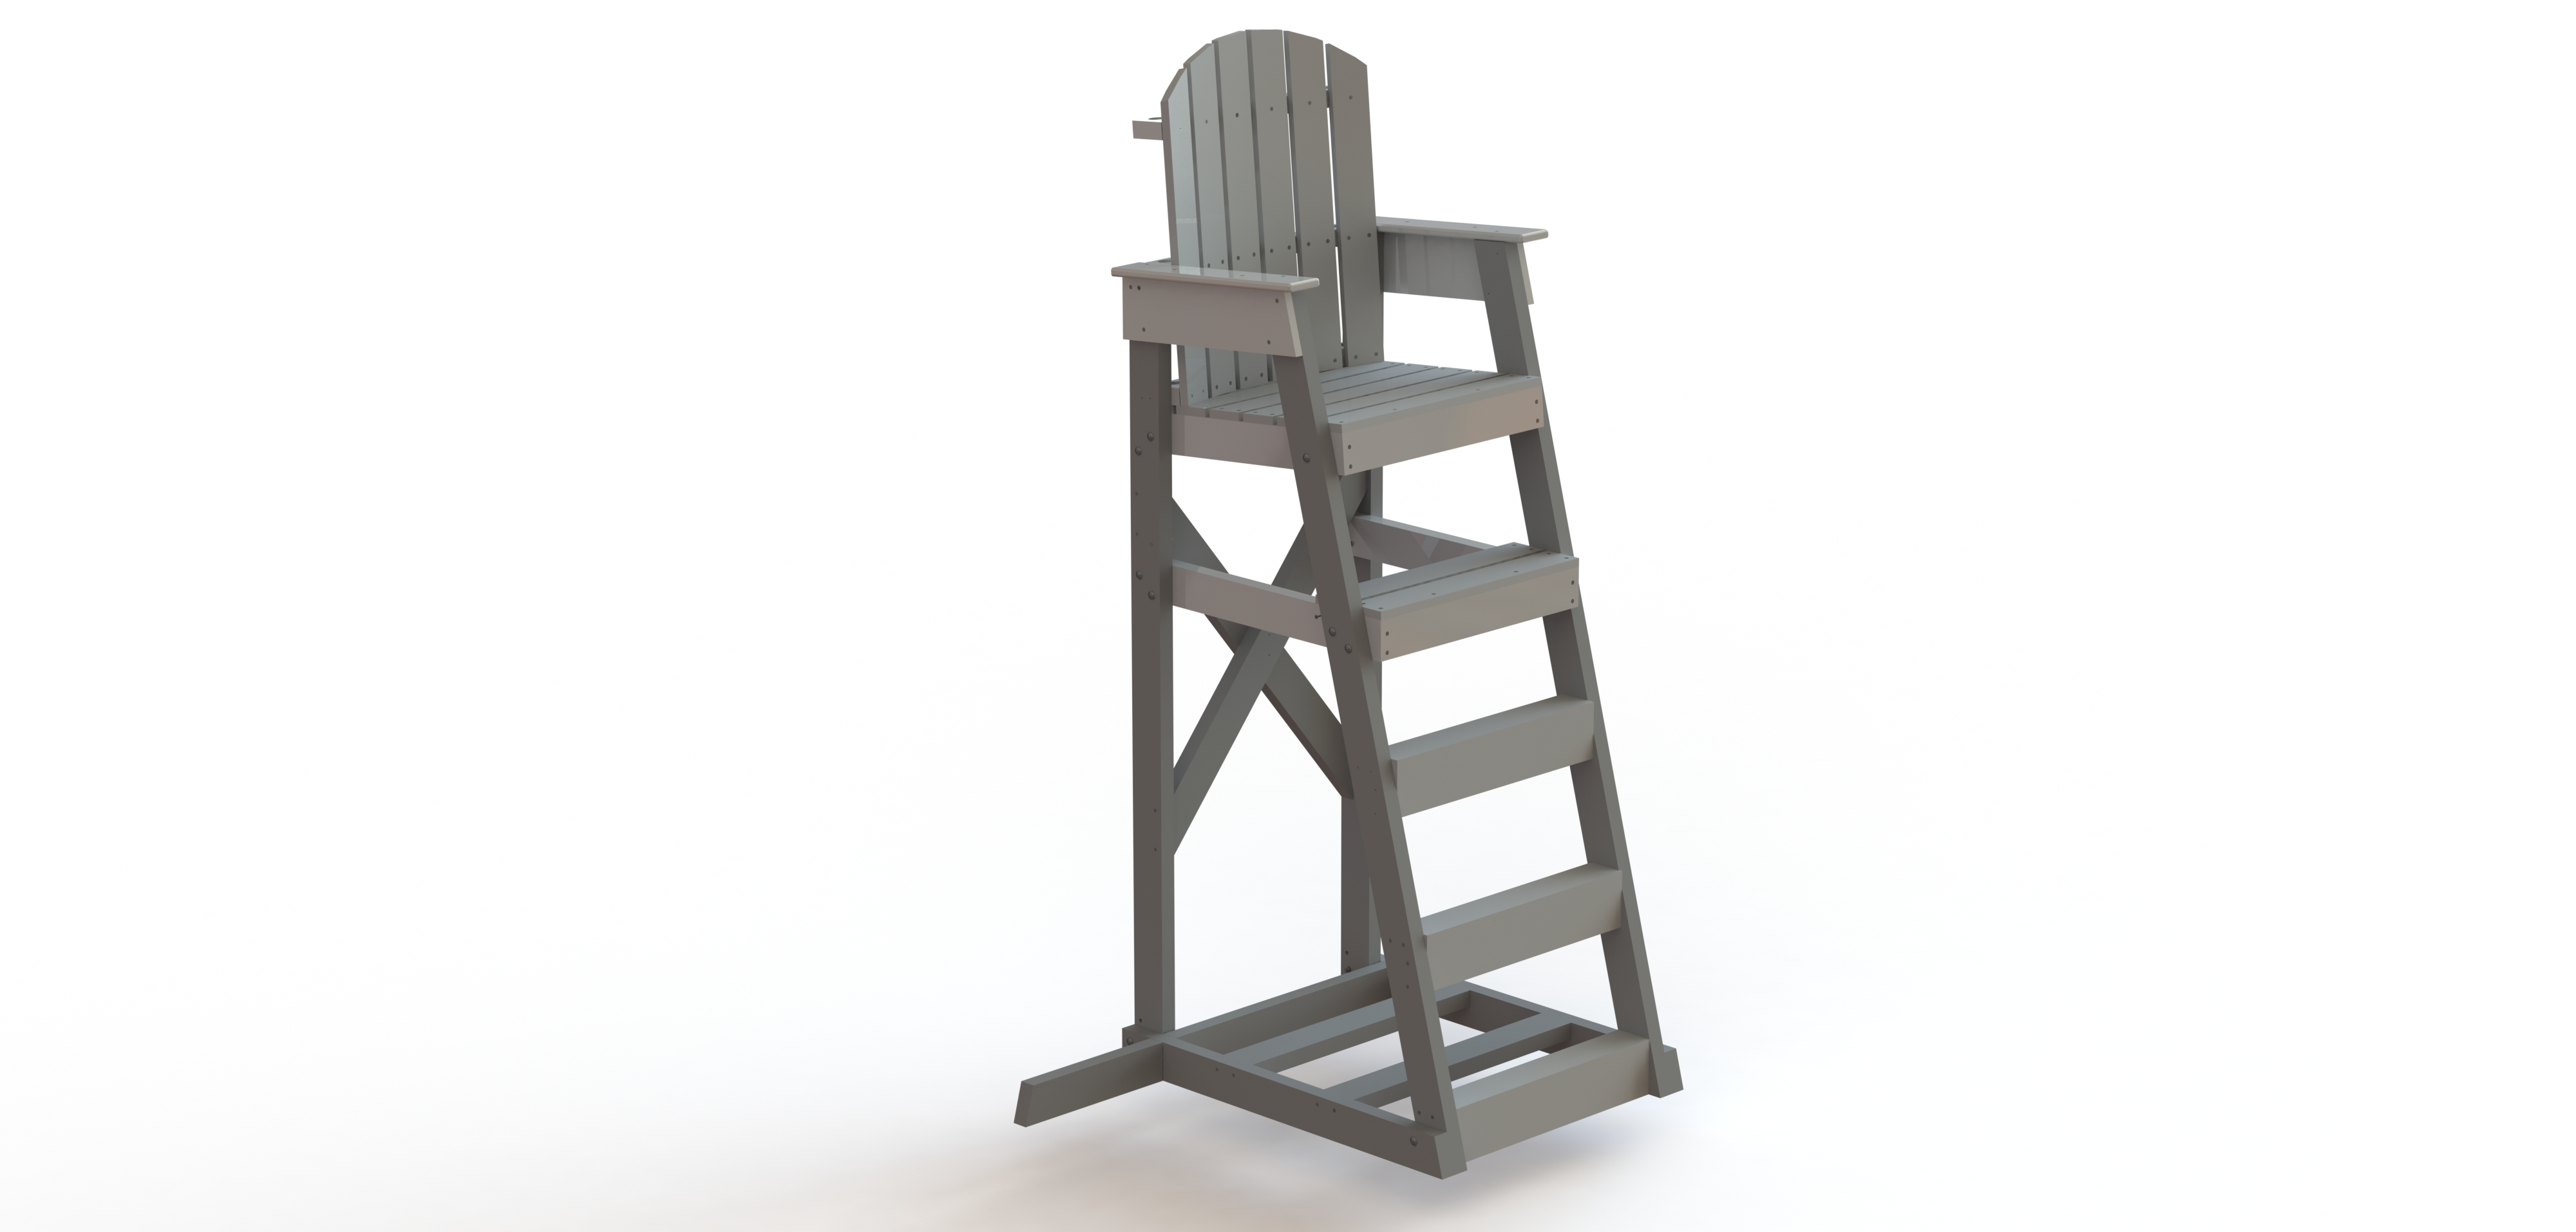 3 in one high chair plans chairs sitting area biggest crossword mendota lifeguard 5 39 recycled spectrum products